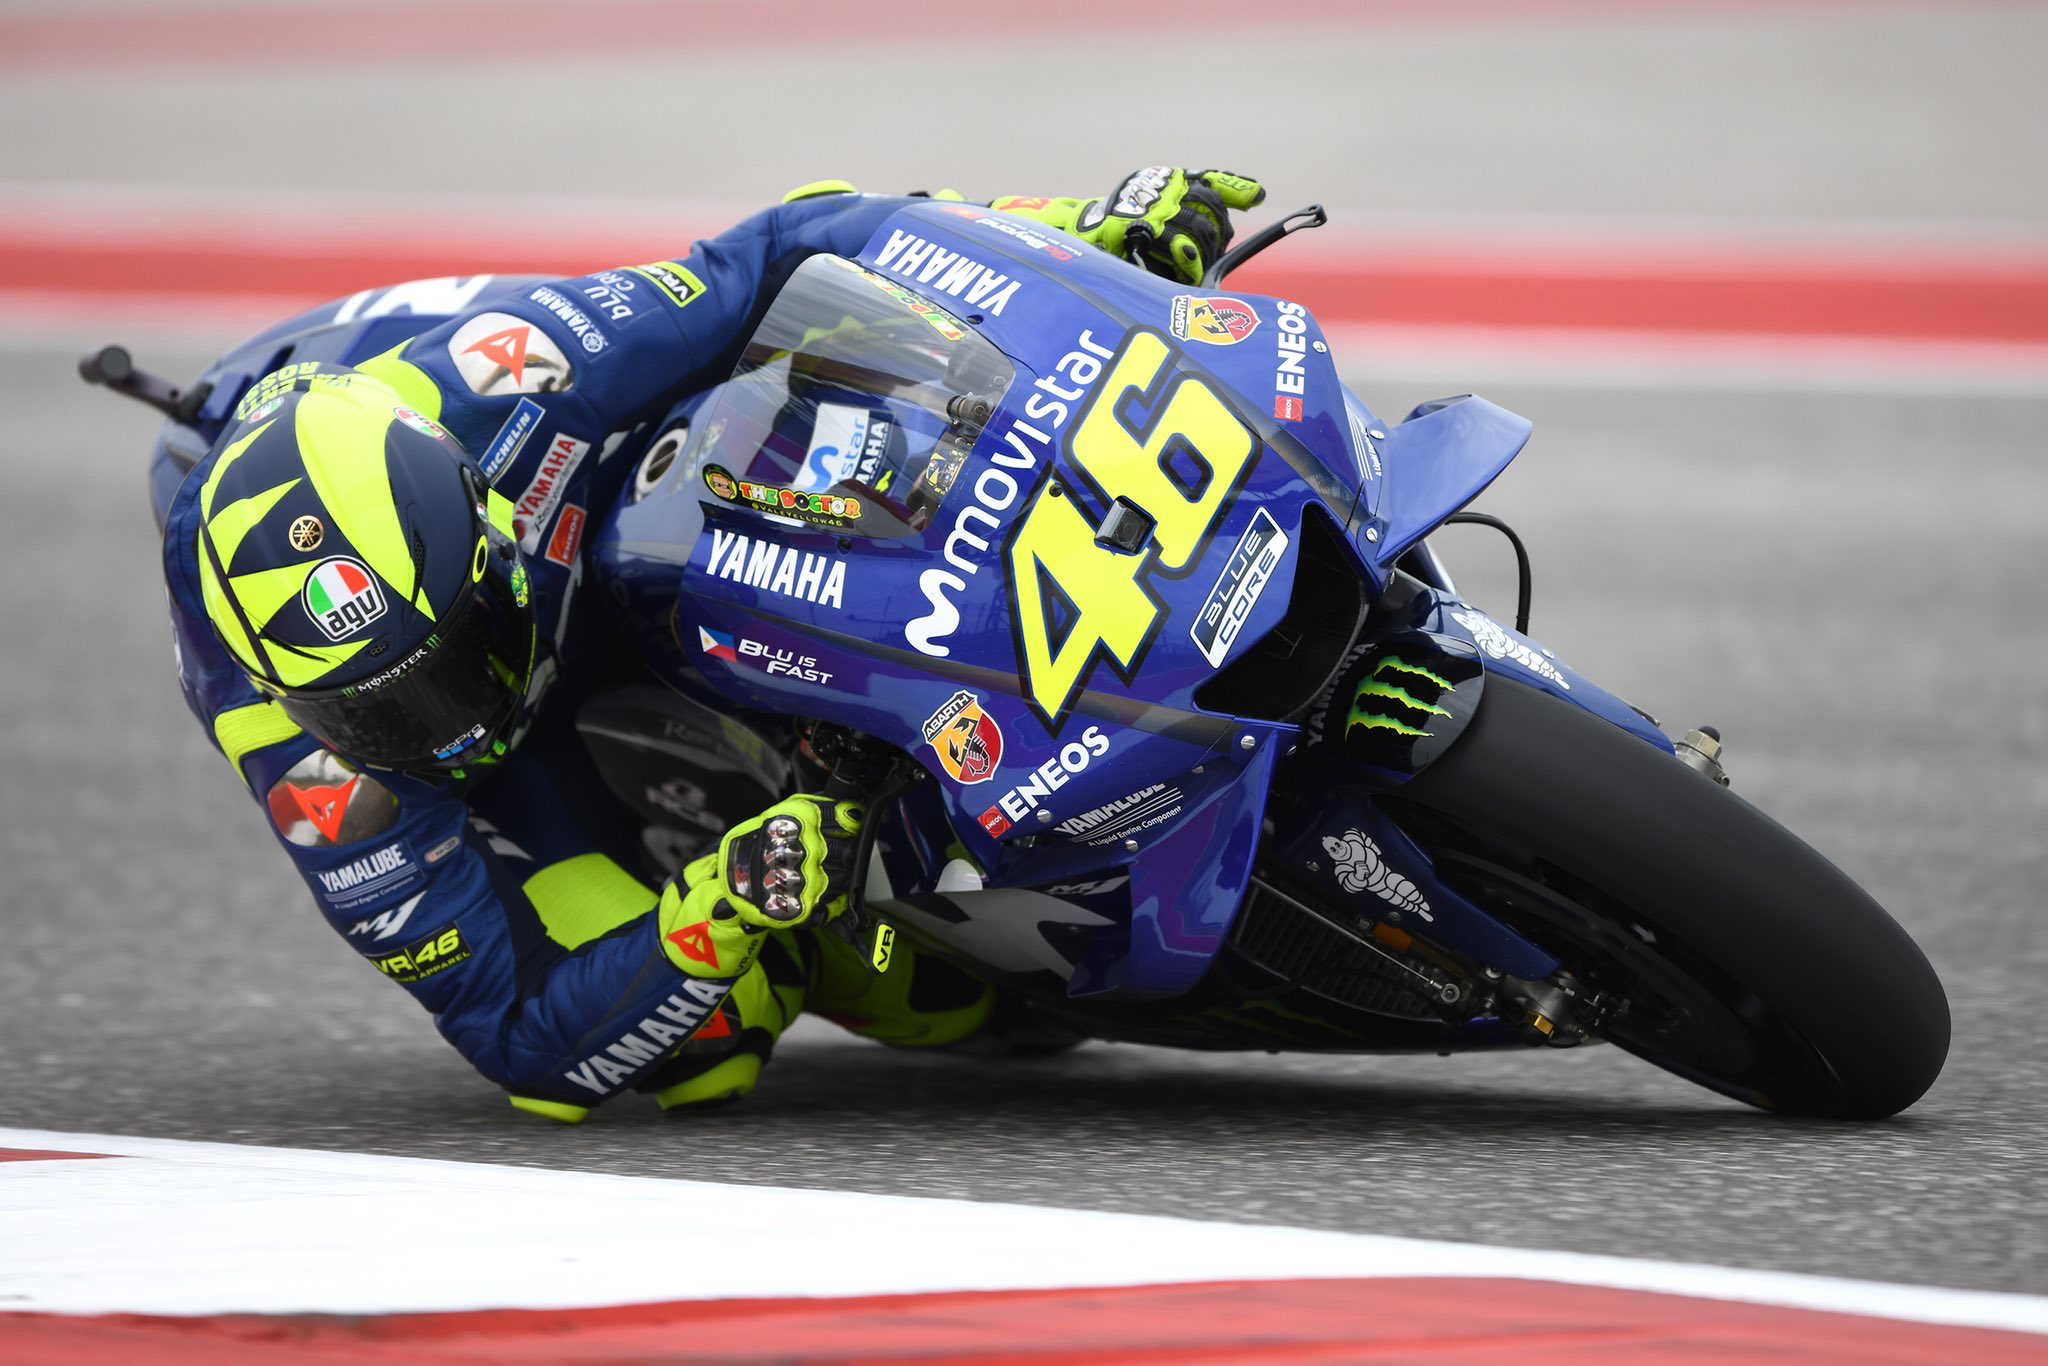 Pin By Ivan On Wallpaper Valentino Rossi Valentino Rossi 46